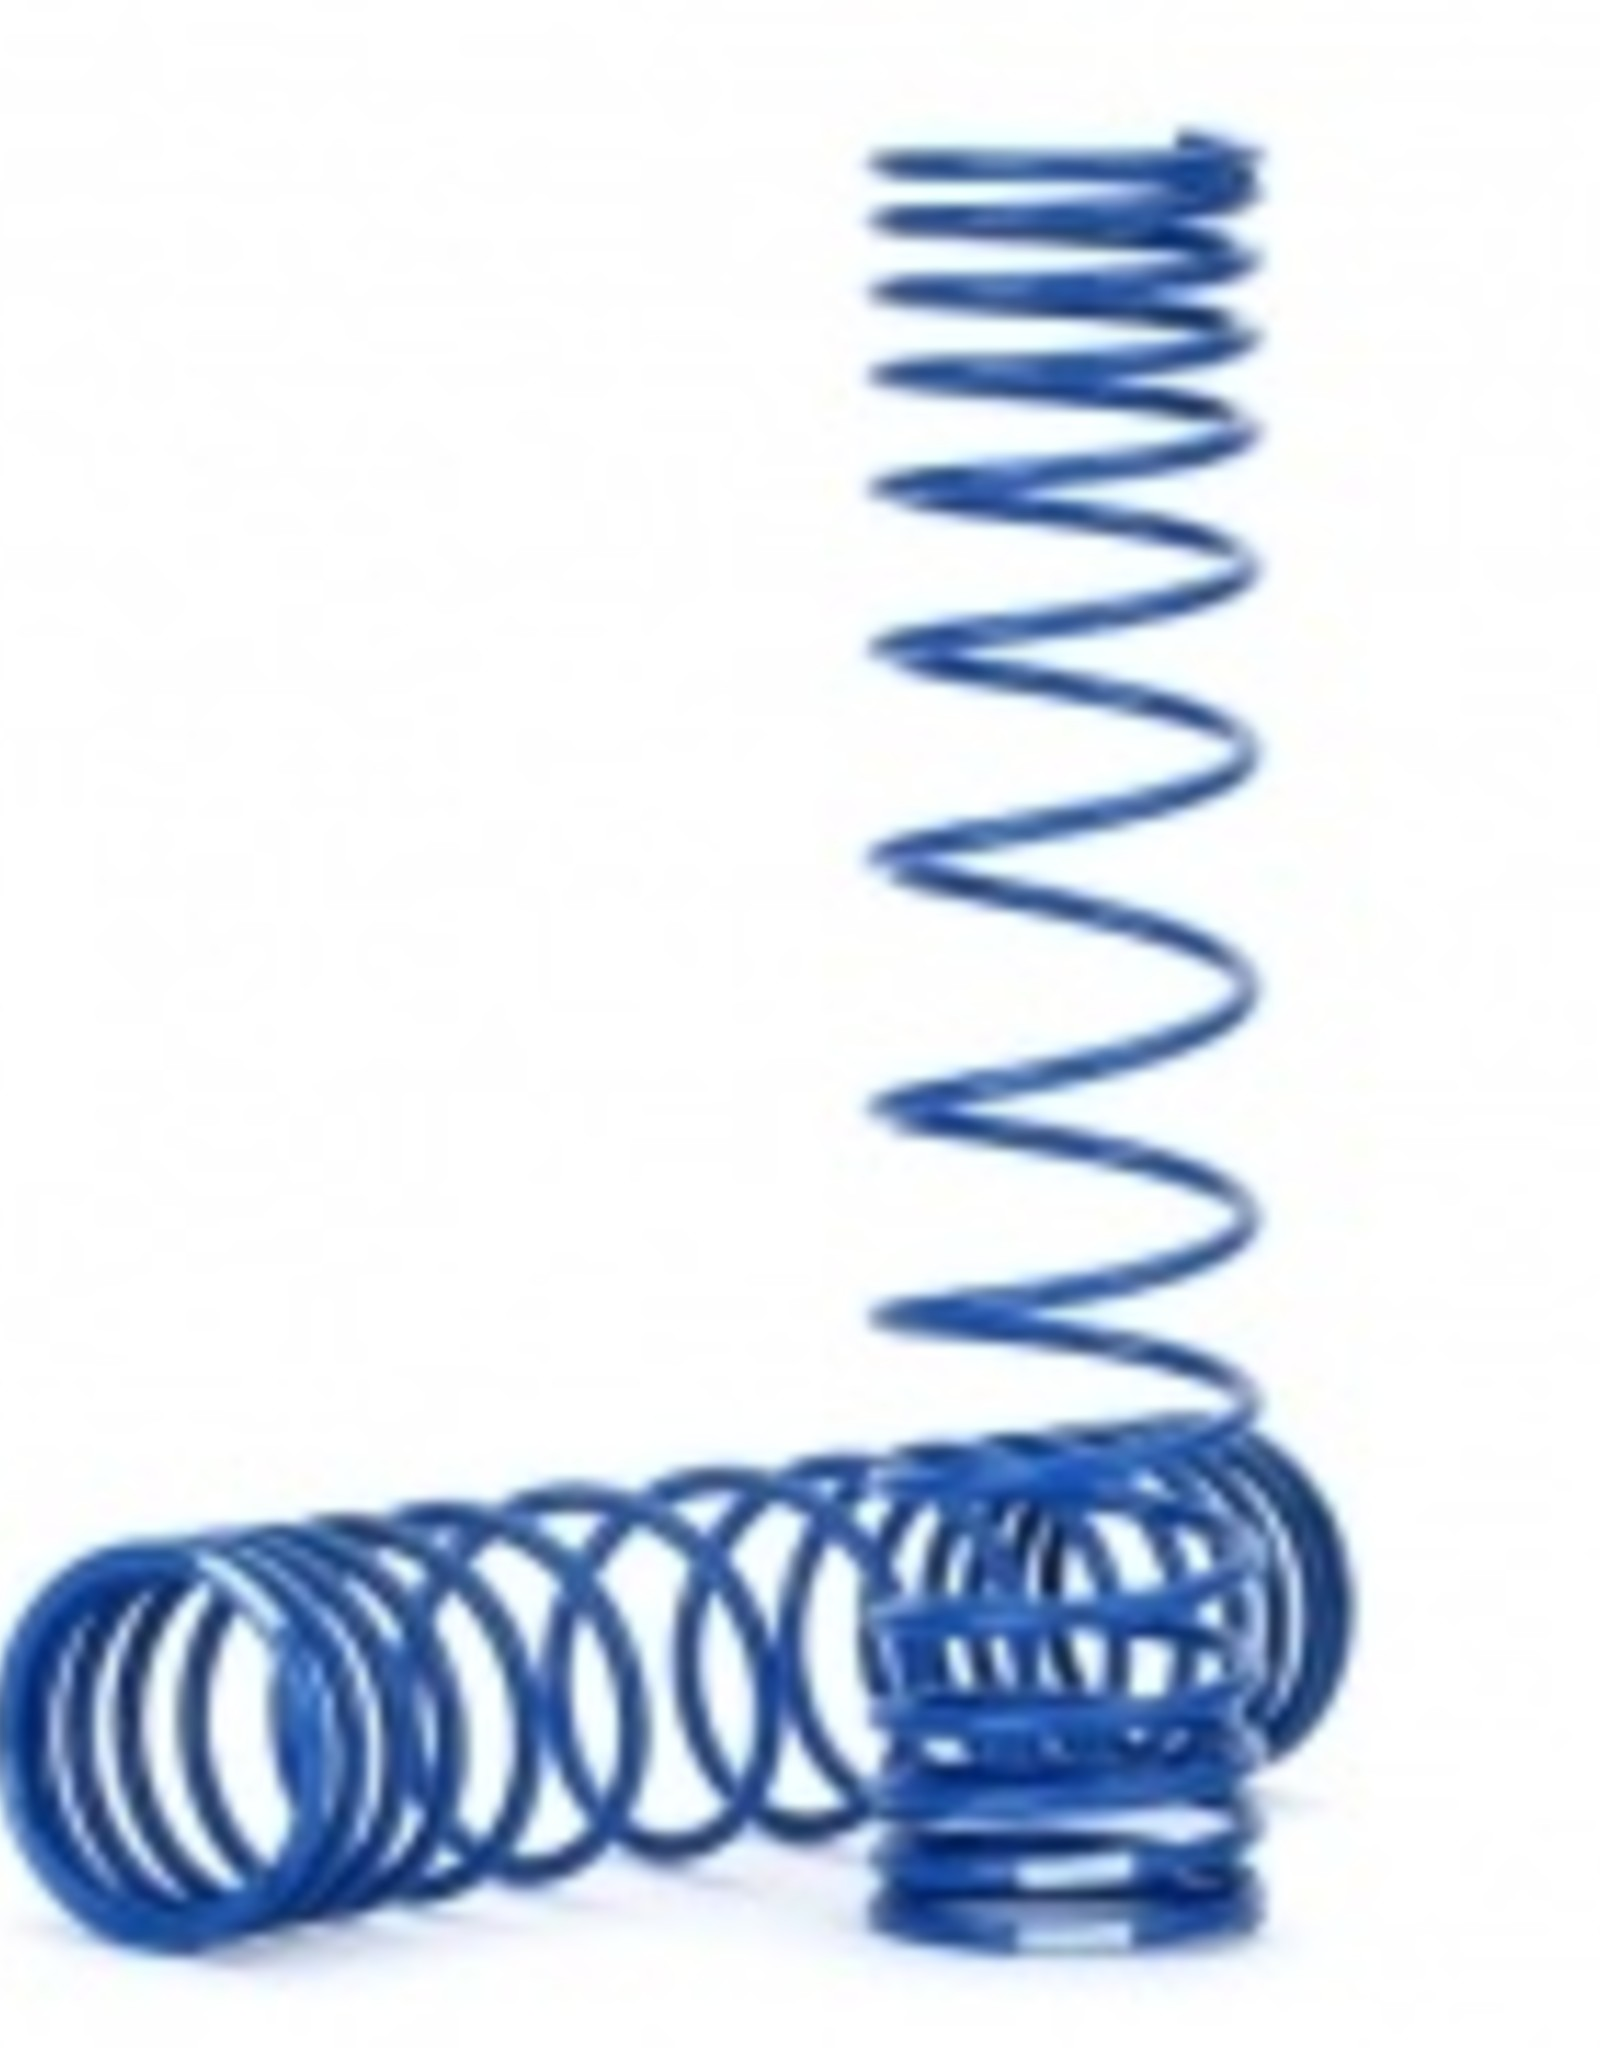 Traxxas Traxxas Unlimited Desert Racer Spring, shock, front (blue) (GTR) (progressive, 0.833 rate, white stripe) (2)